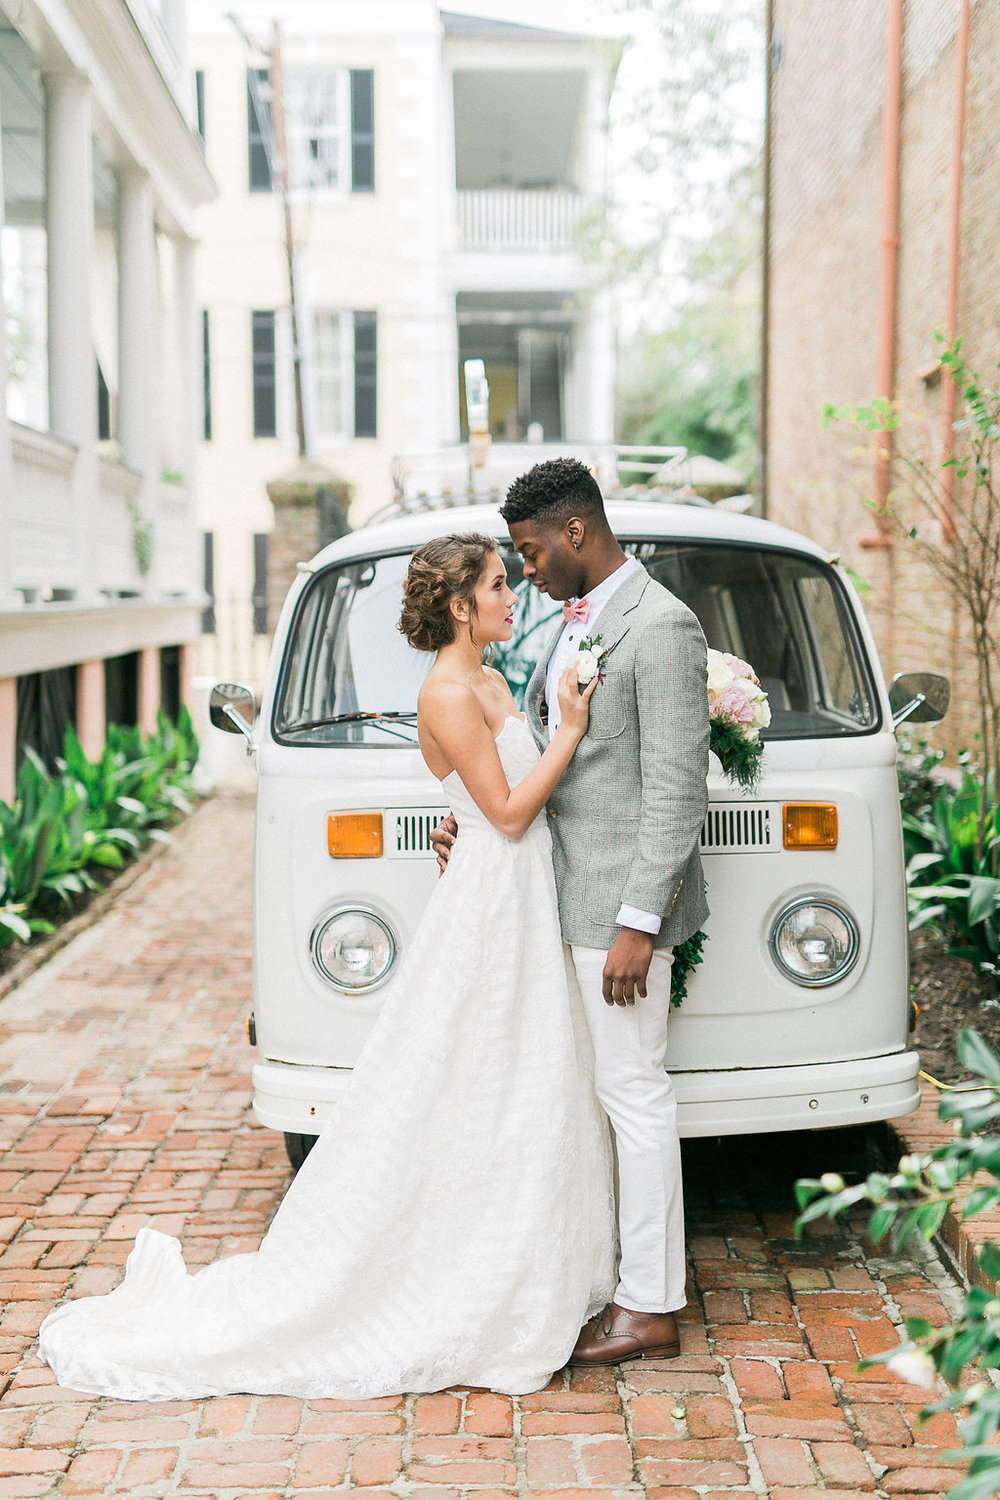 charleston spring brunch elopement pop up wedding planners at the parsonage - atlanta, greenville wedding planners - scarlet plan _ design (364).jpg